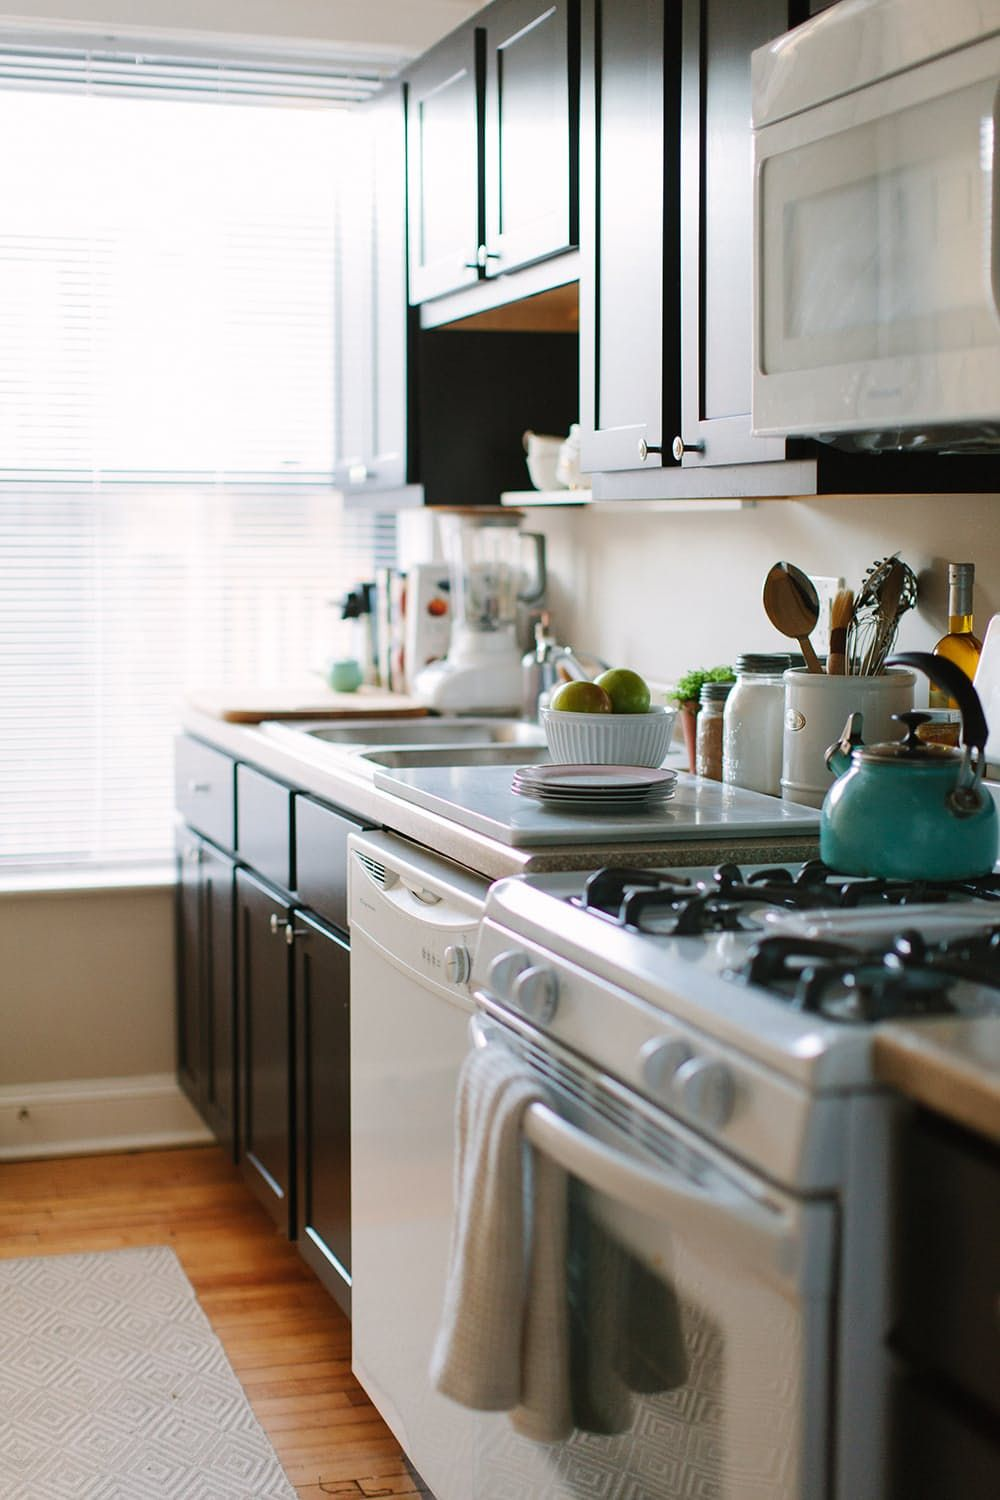 10 Of The Best Fixes For The Most Common Rental Kitchen Problems Apartment Kitchen Organization Rental Kitchen Kitchen Solutions